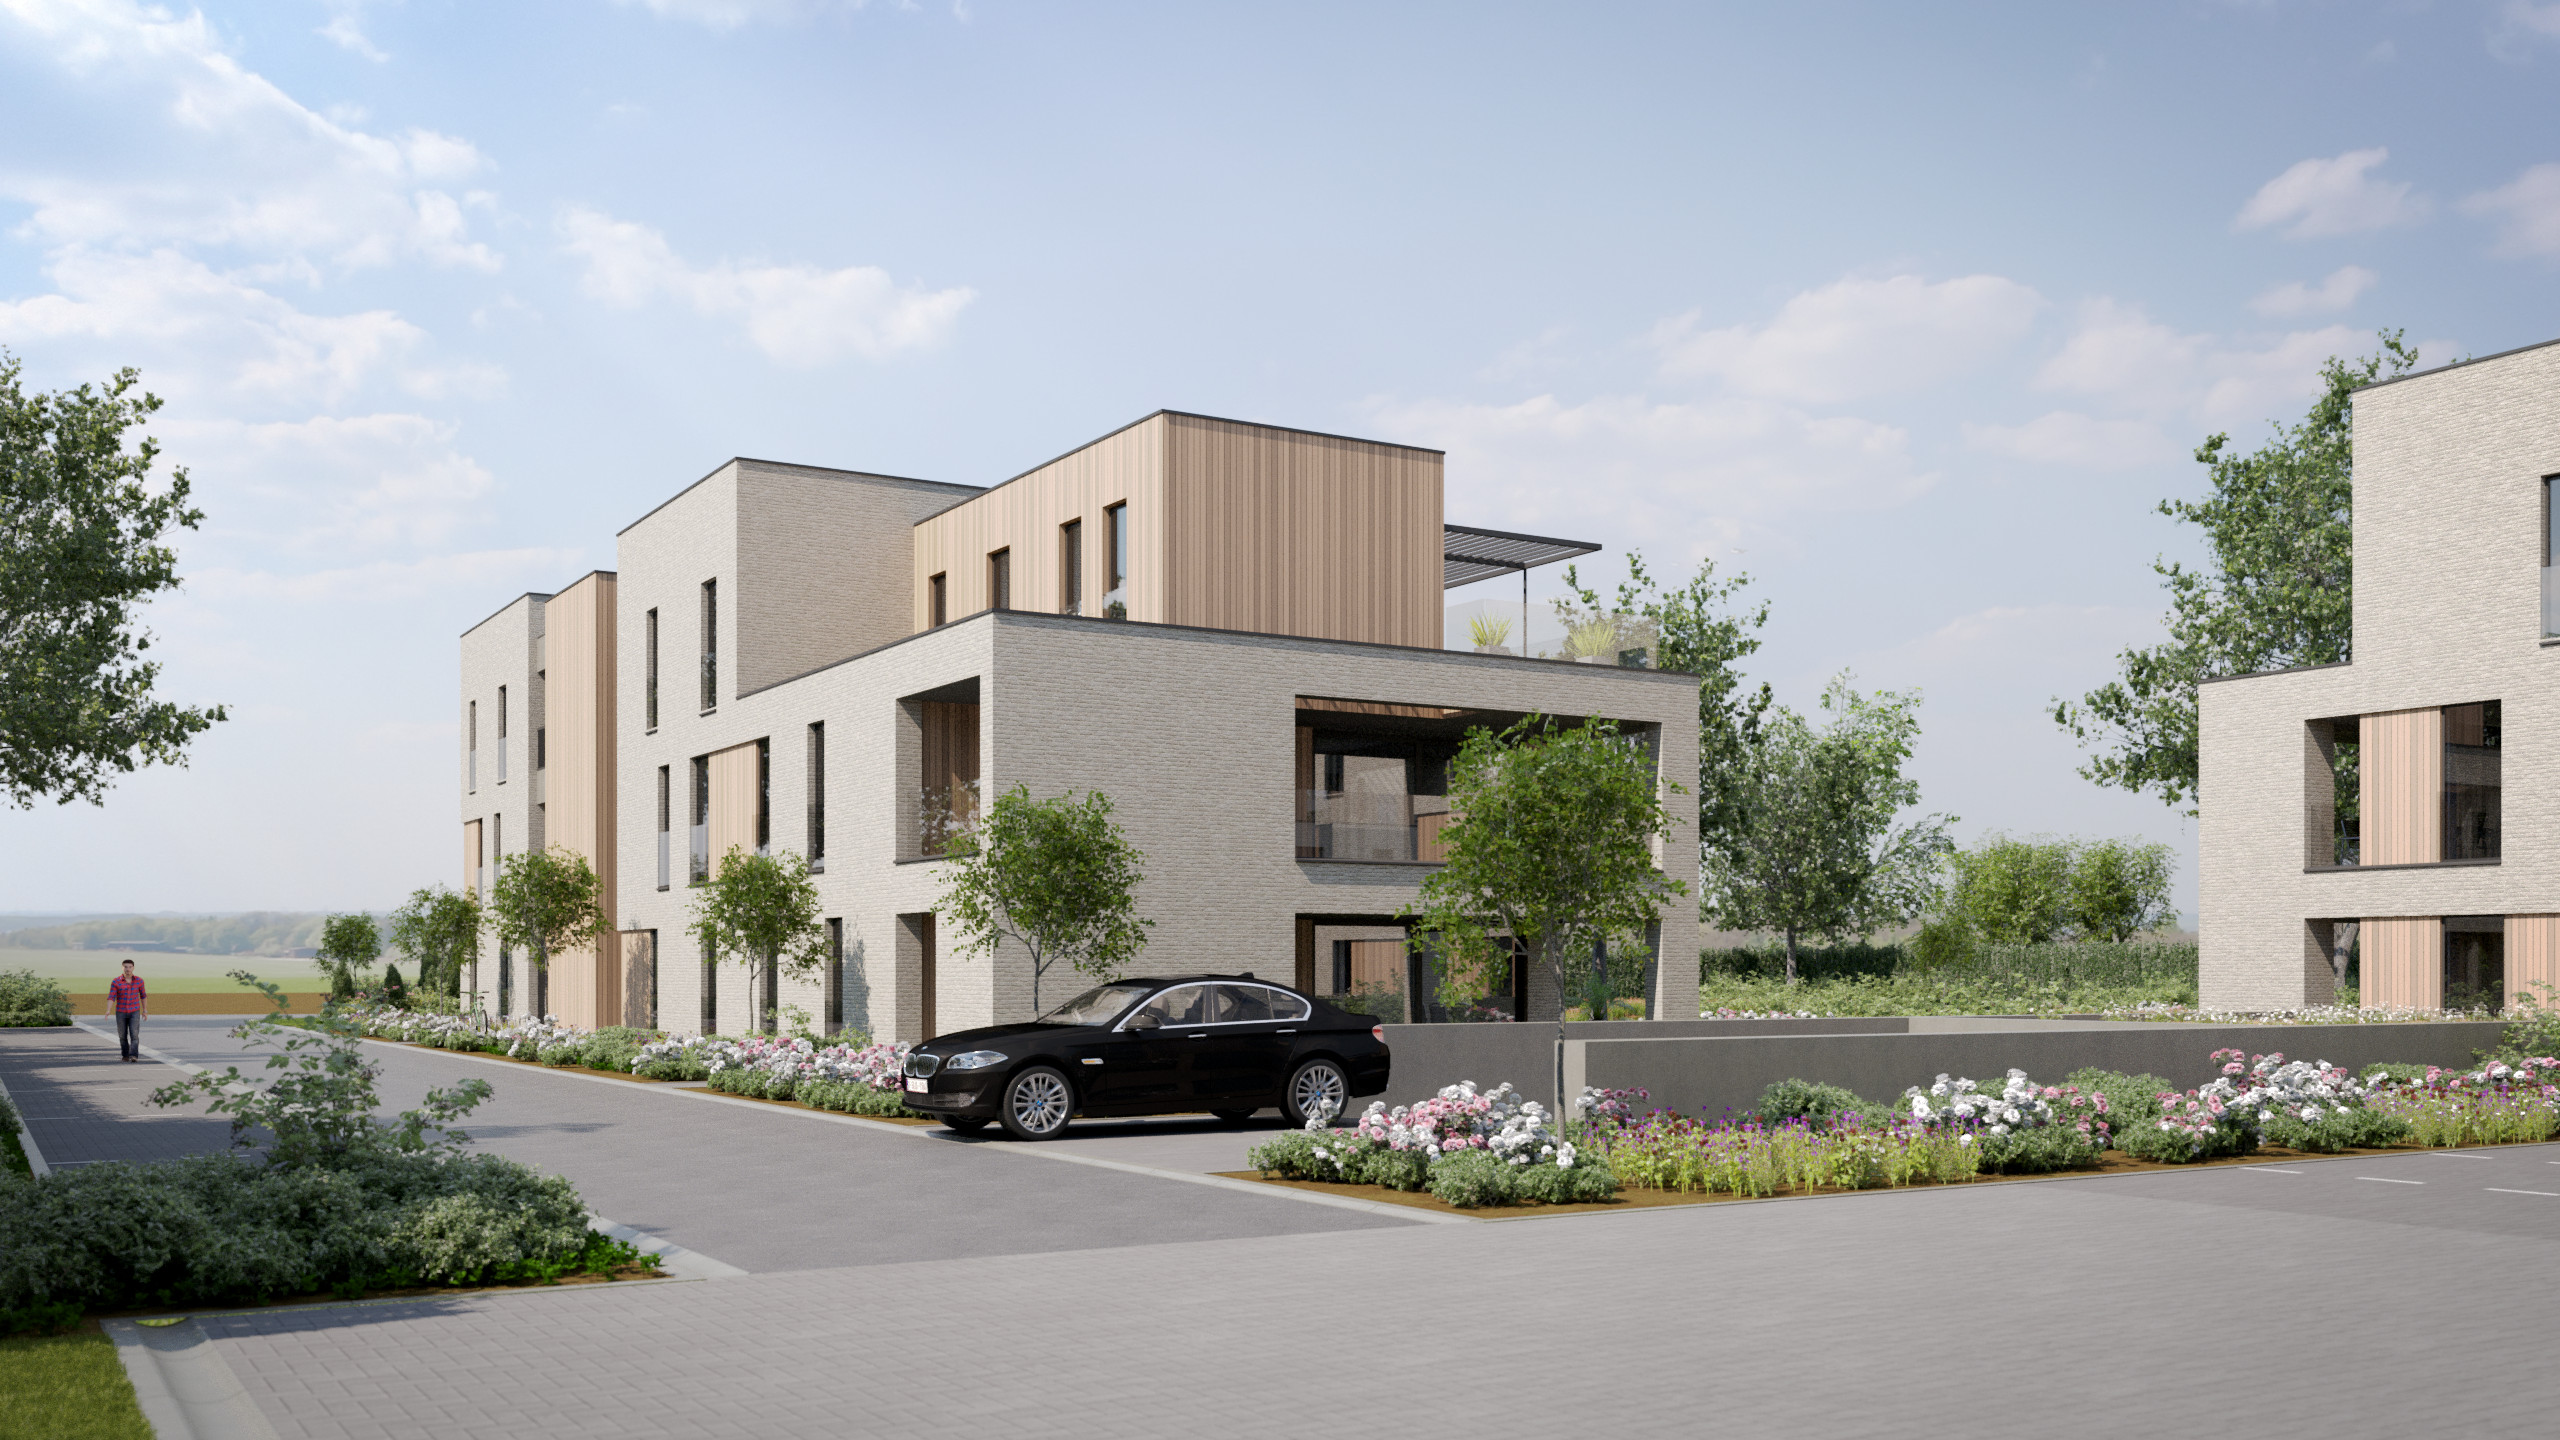 Exterieur exterior render visualisatie FvdB Group